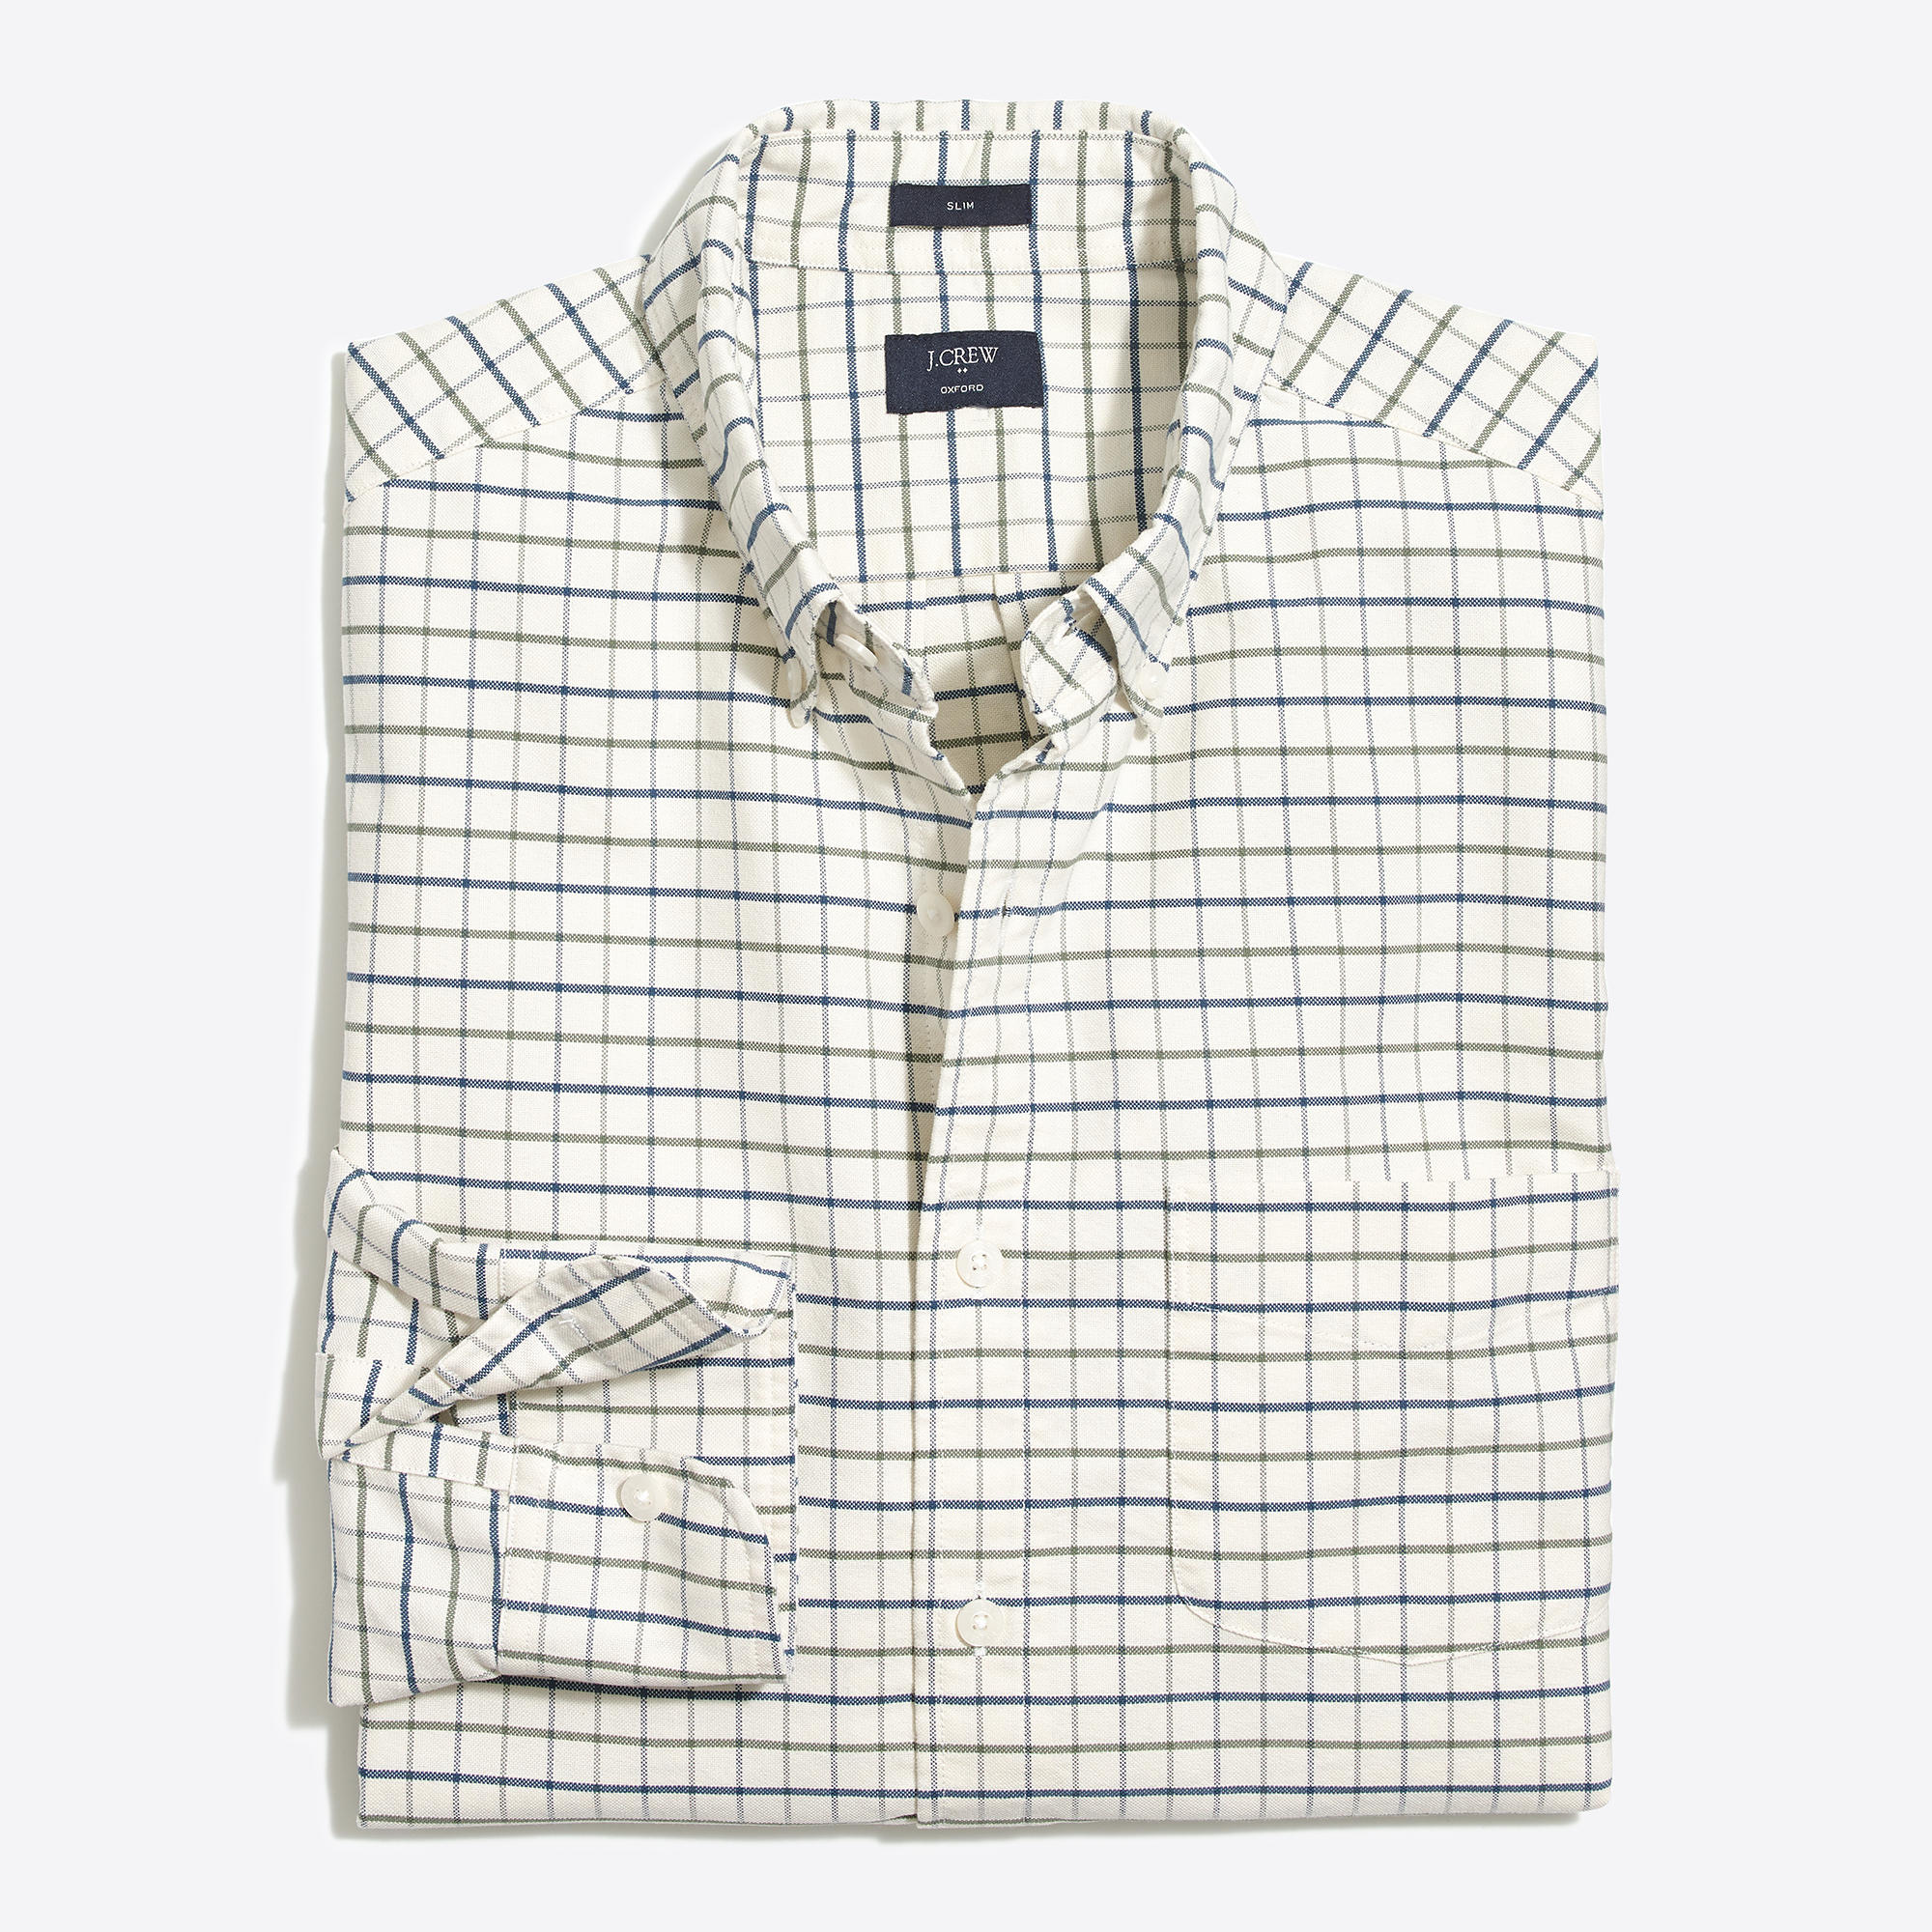 Men's Shirts : Oxford, Linen, & Dress Shirts | J.Crew Factory